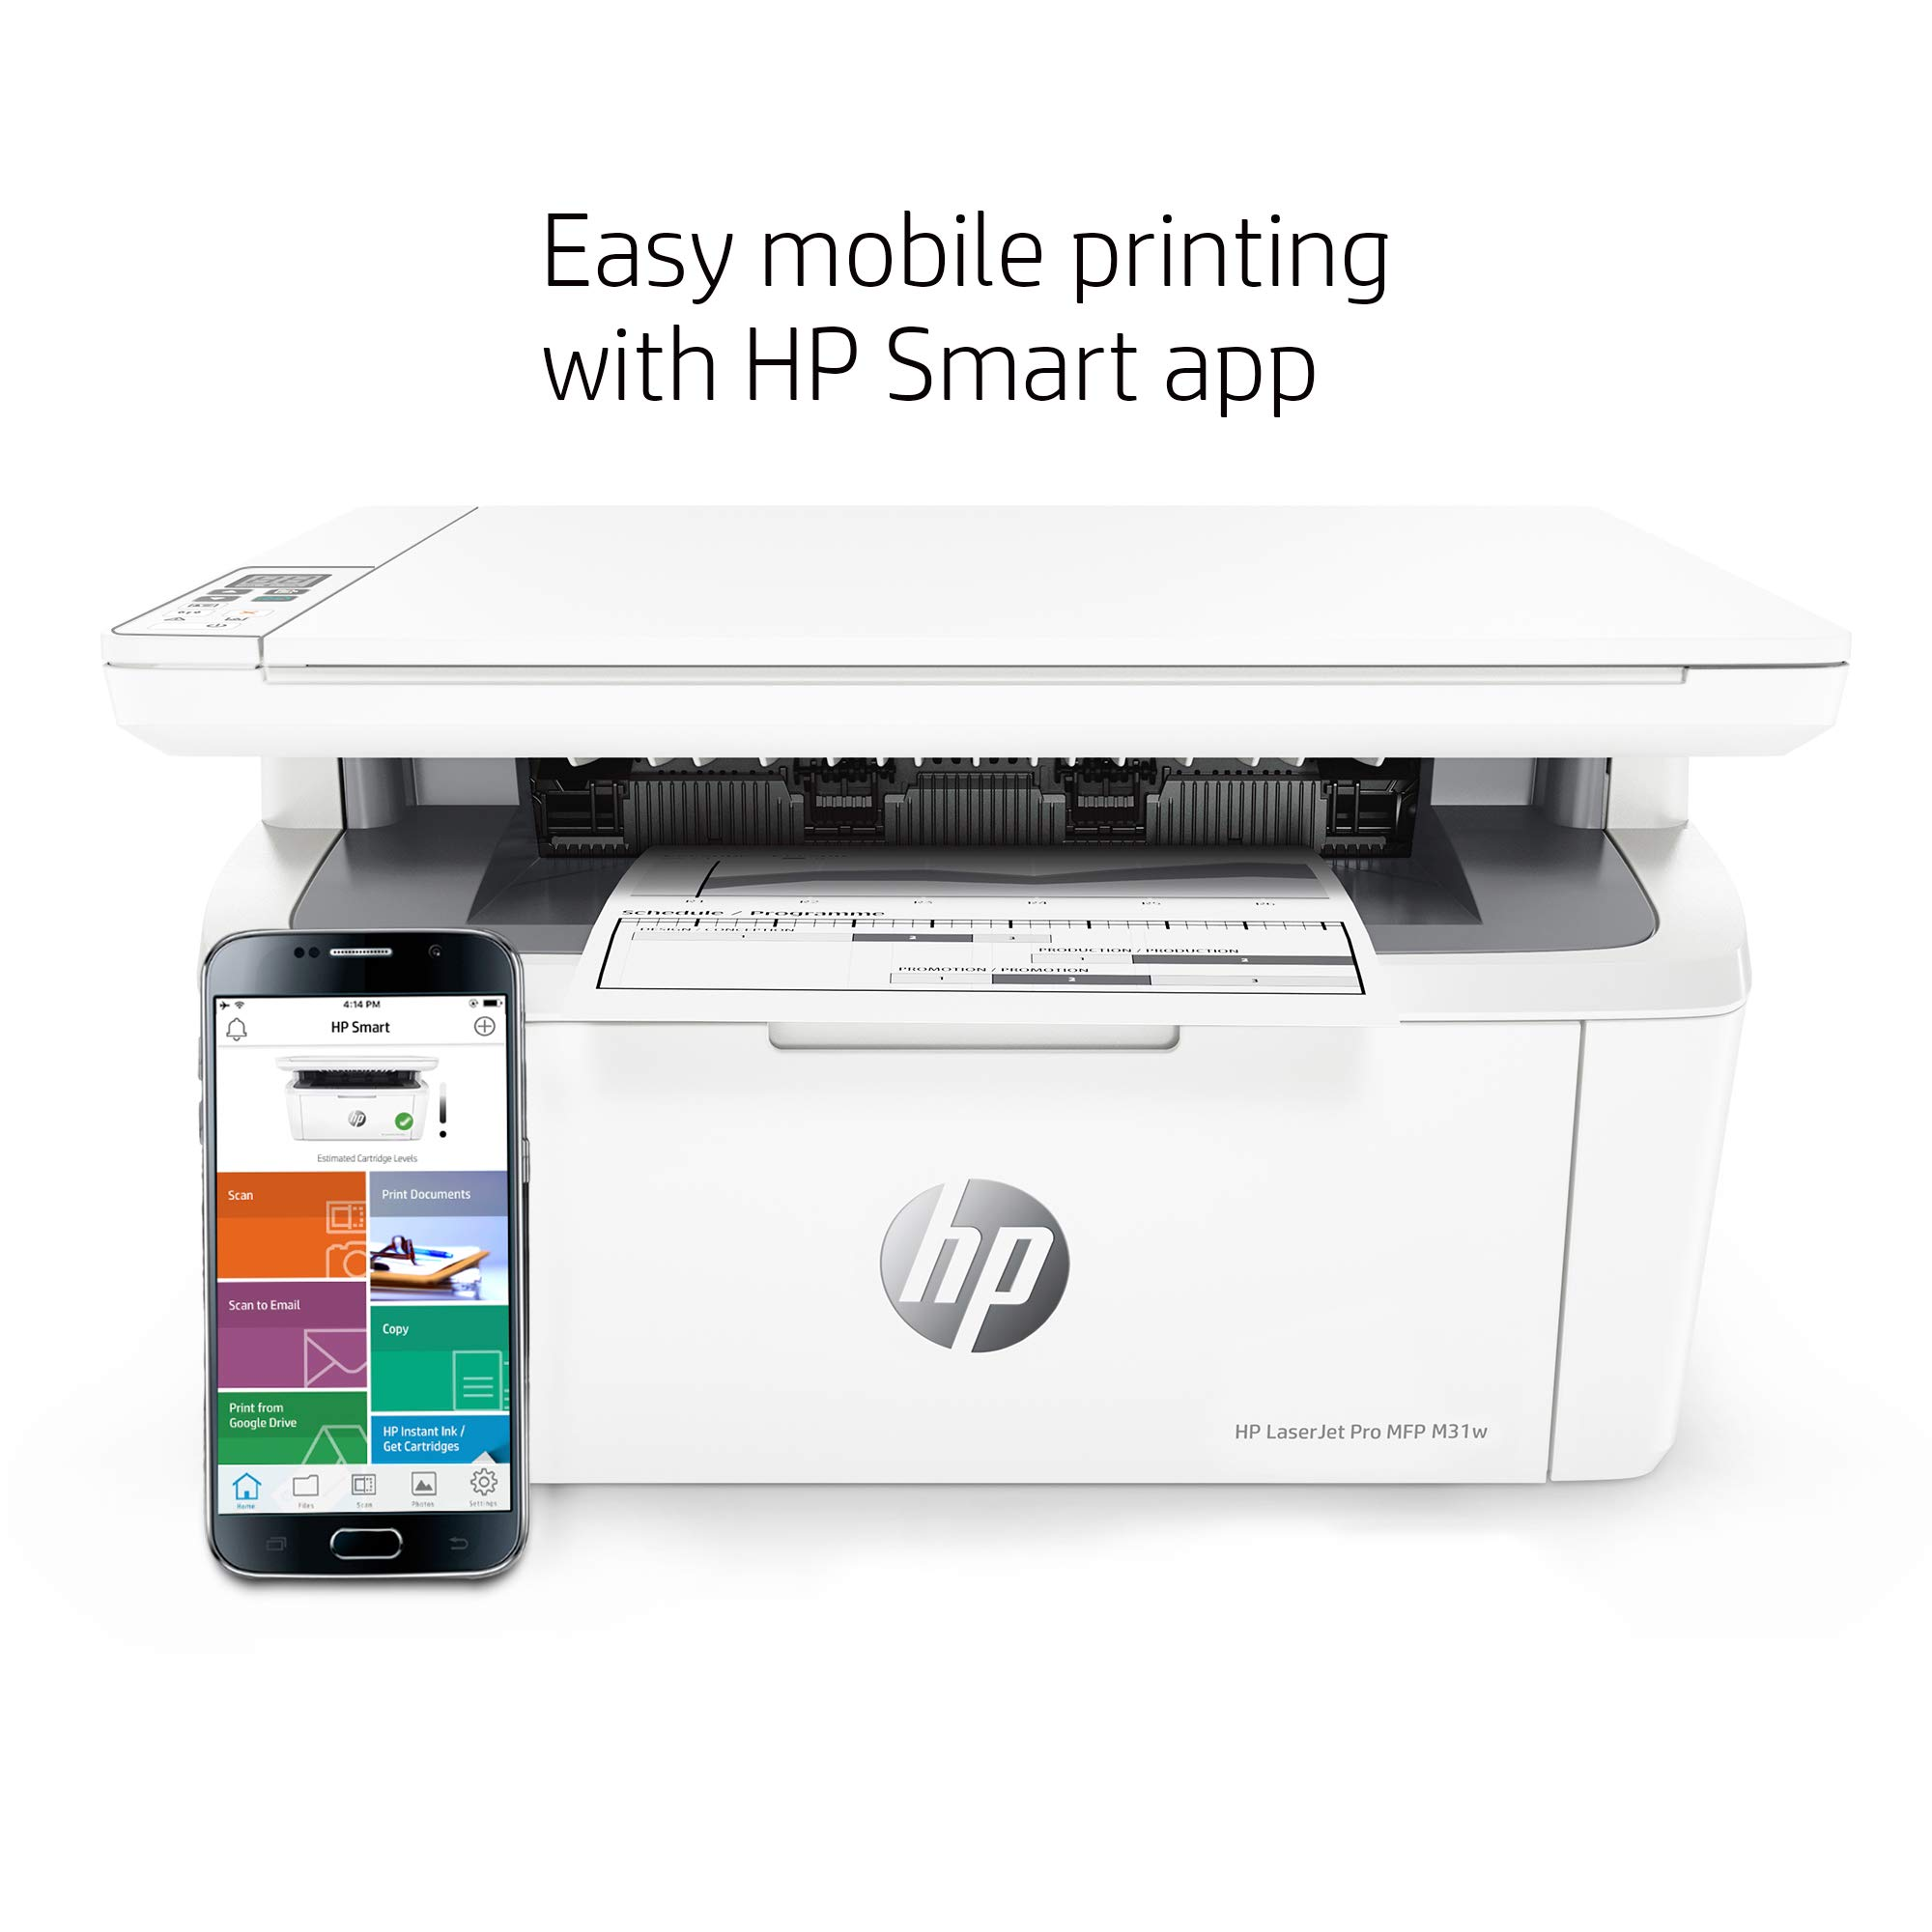 HP Laserjet Pro M31w All-in-One Wireless Monochrome Laser Printer with Mobile Printing (Y5S55A) by HP (Image #7)